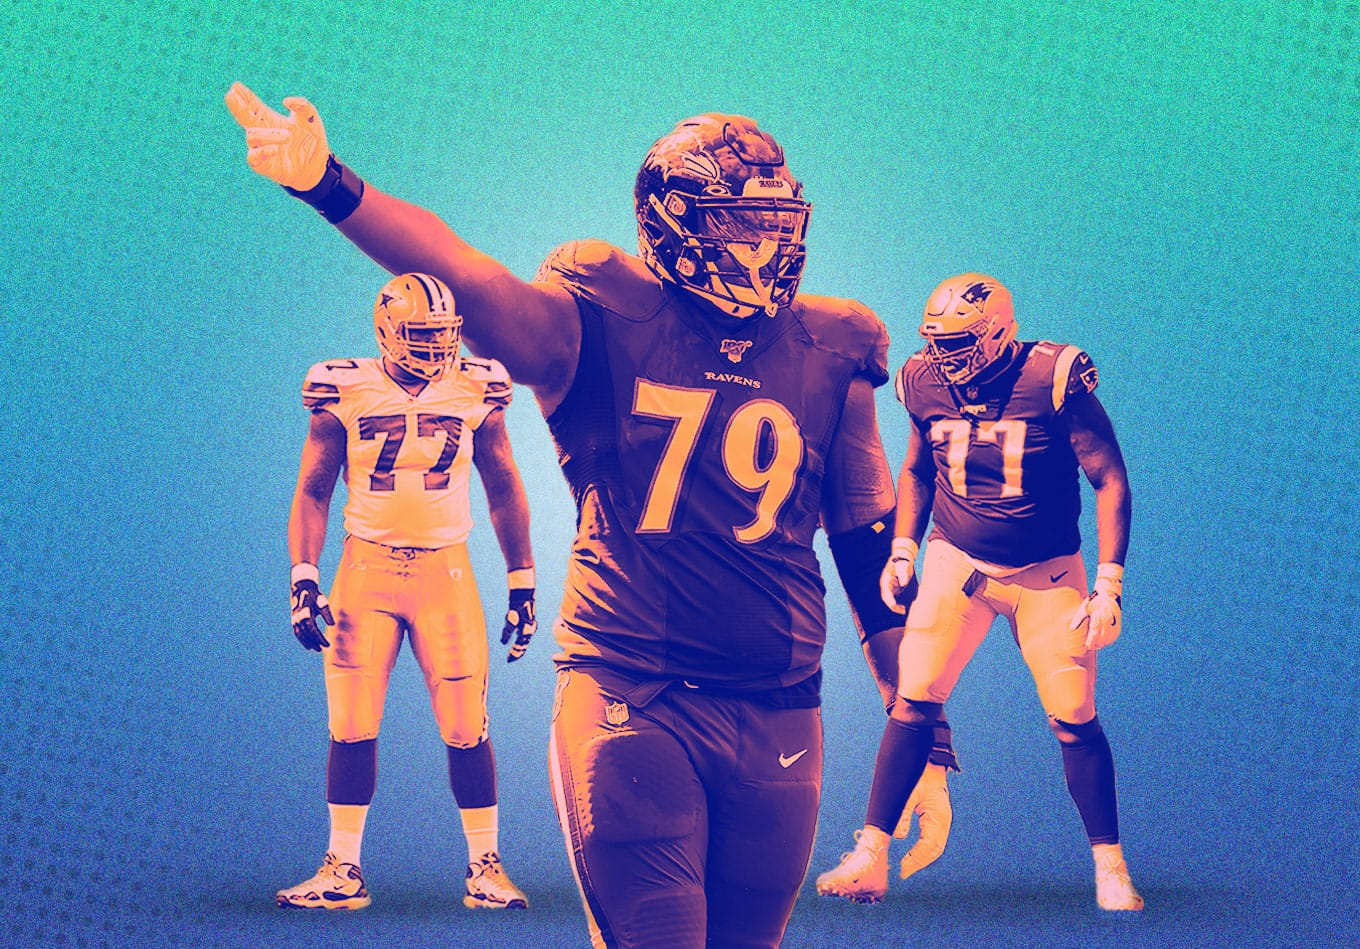 NFL Positional Rankings: The Best, Worst, and Most Improved Teams on the Offensive Line